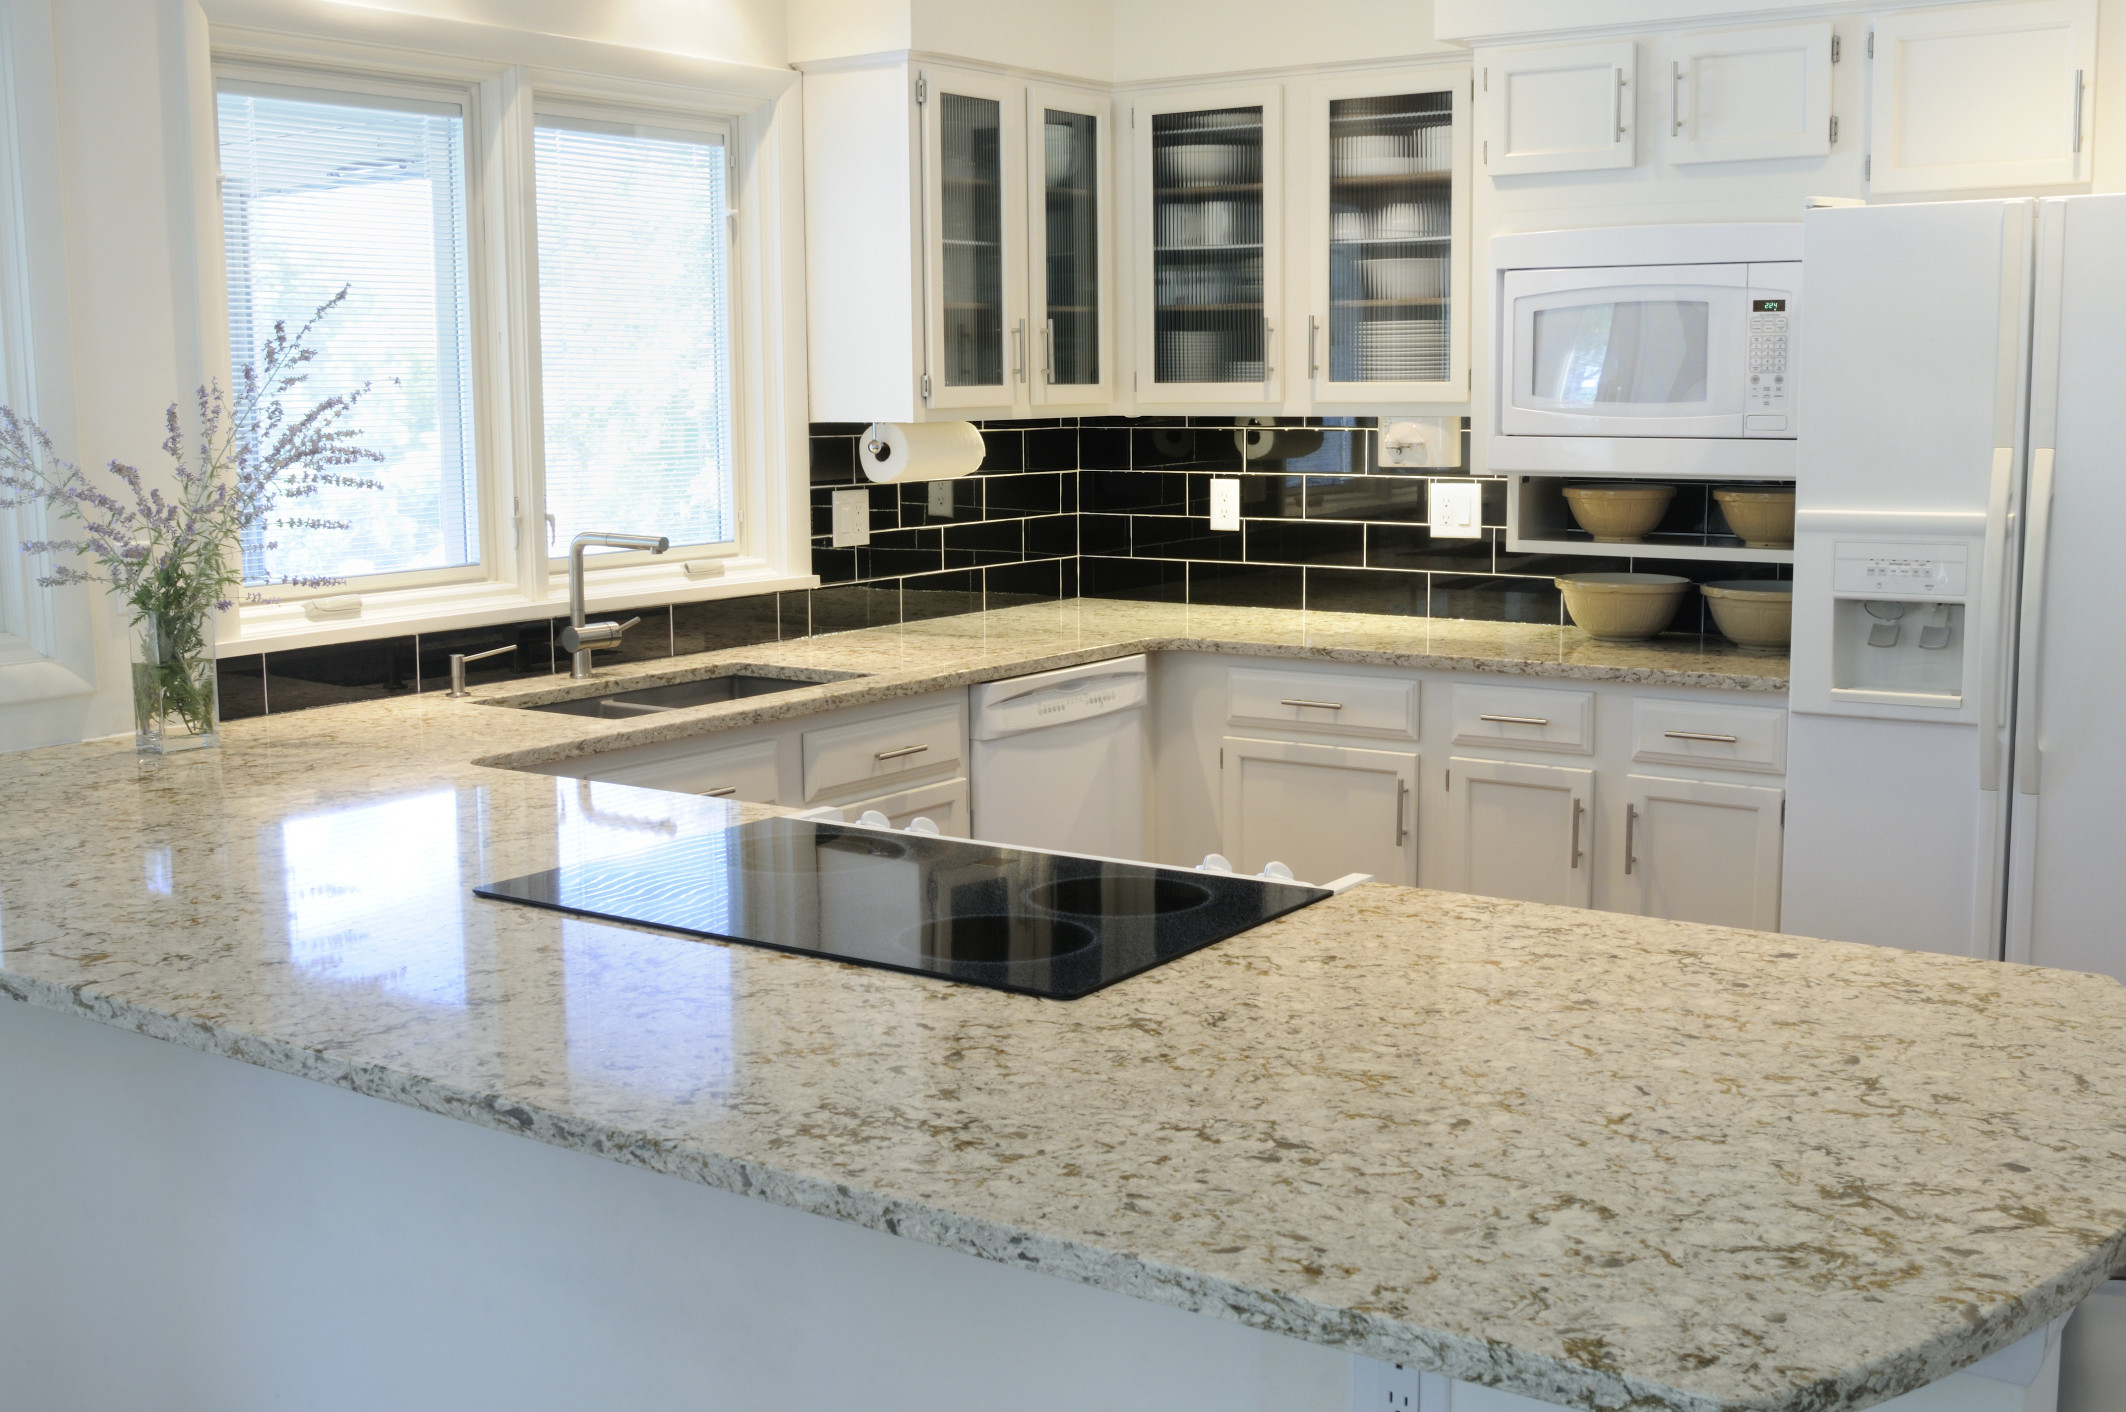 Granite Kitchen Countertops With White Cabinets 10 Reasons To Let Go Of The Granite Obsession Already Huffpost Life